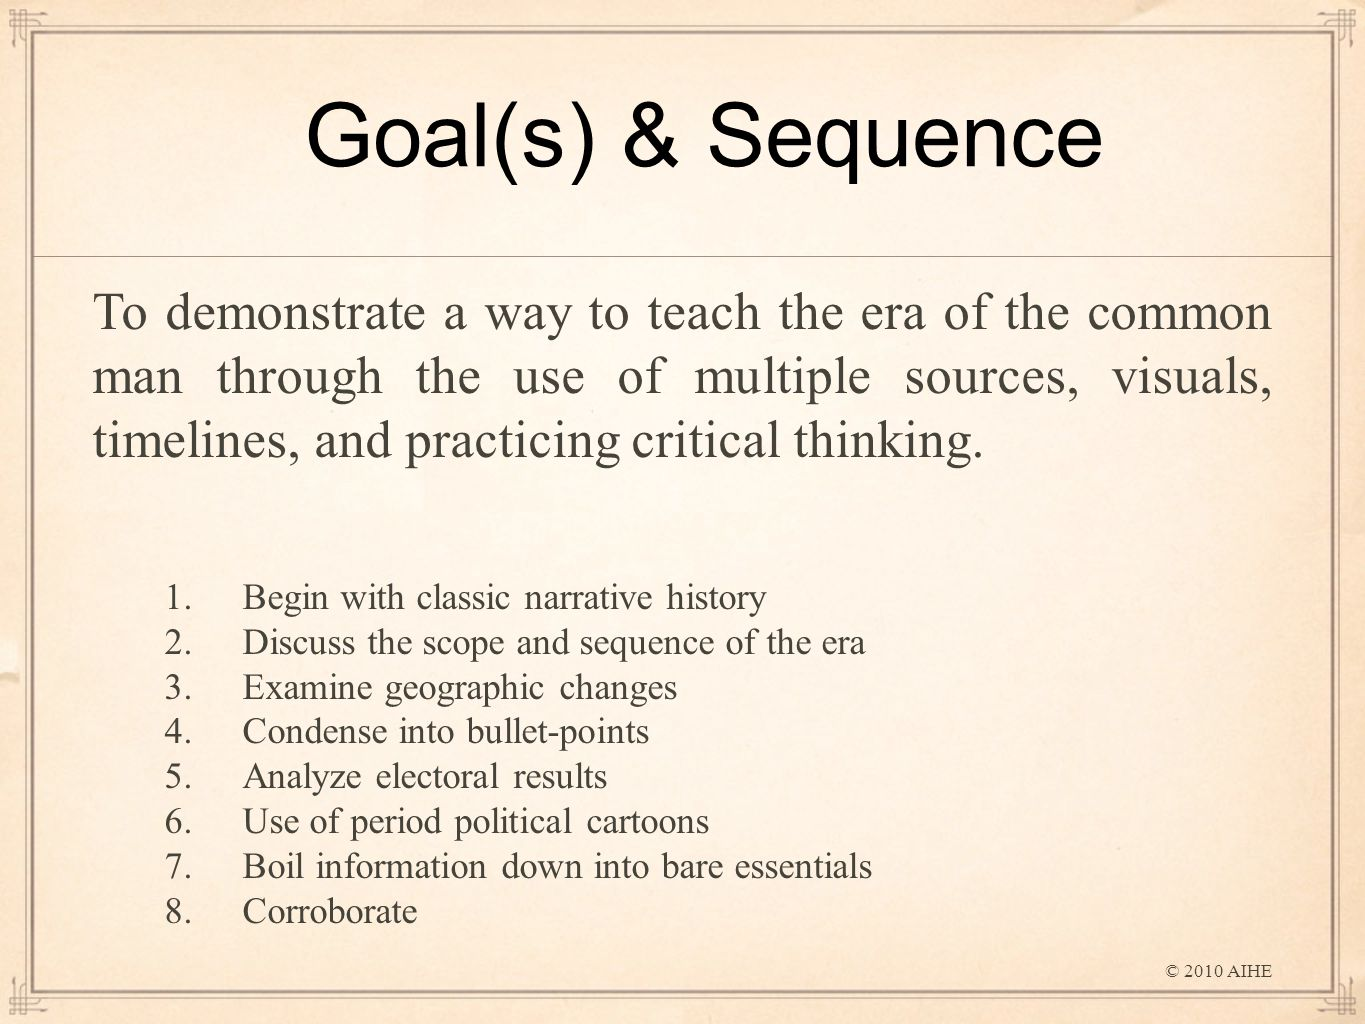 Goal(s) & Sequence To demonstrate a way to teach the era of the common man through the use of multiple sources, visuals, timelines, and practicing critical thinking.